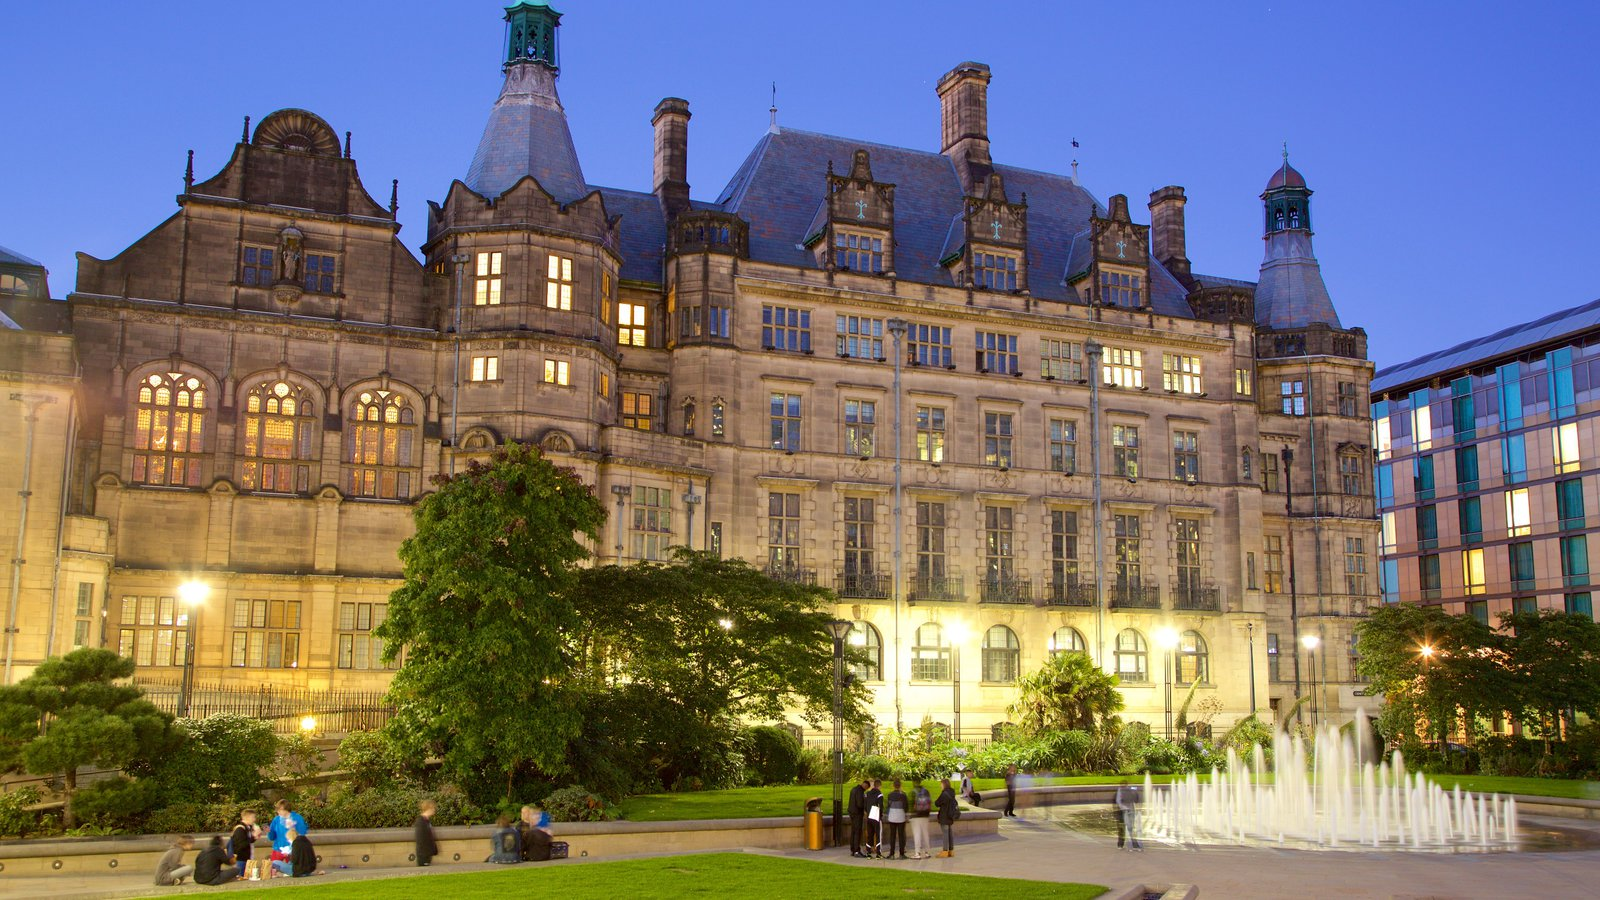 Gardens & Parks Pictures: View Images of Sheffield Town Hall